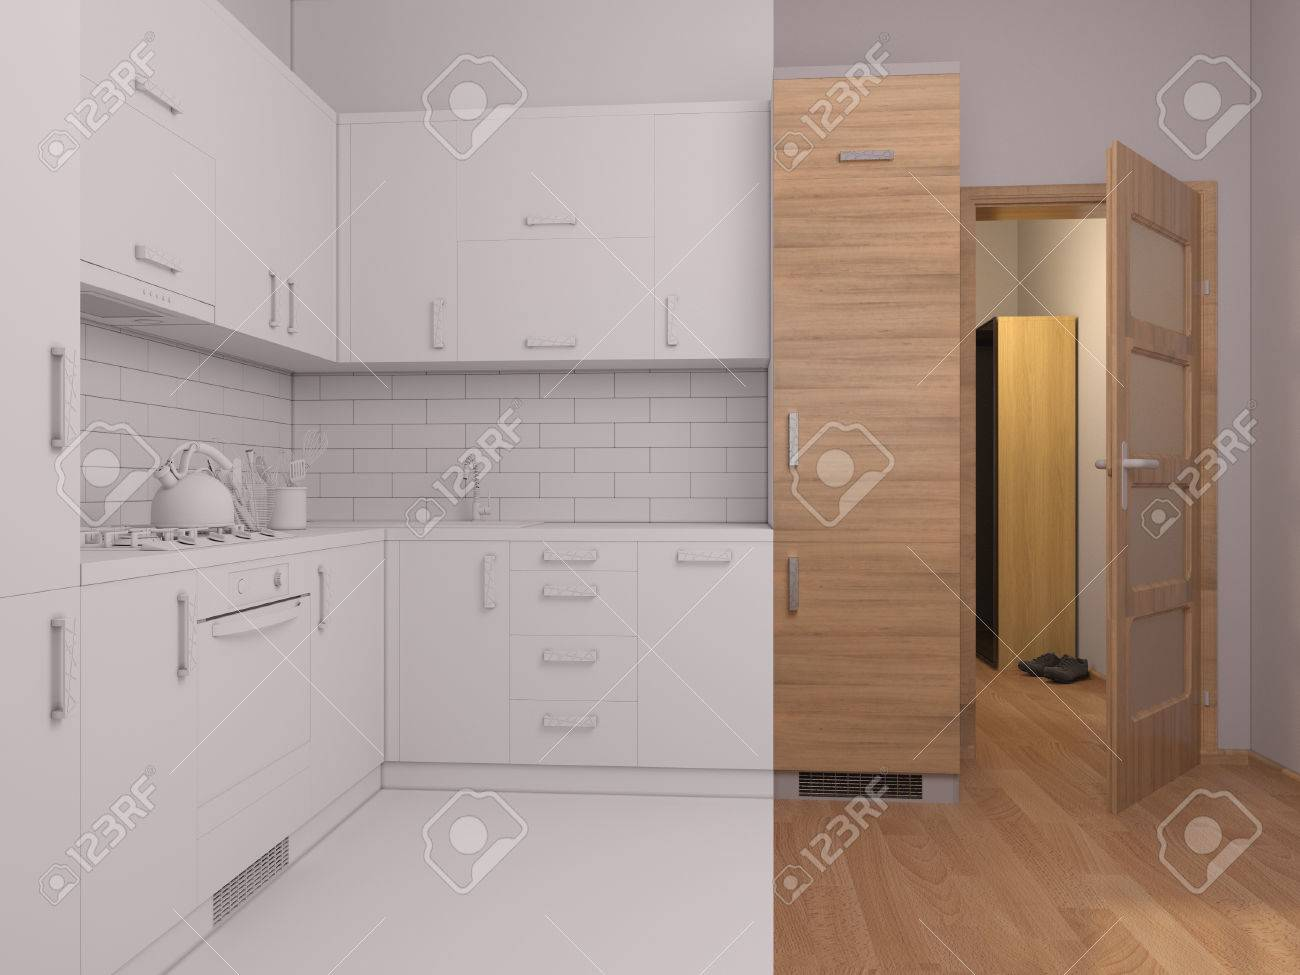 Kitchen Open Door Design 3d Render Collage Of Interior Design Kitchen In A Studio Apartment